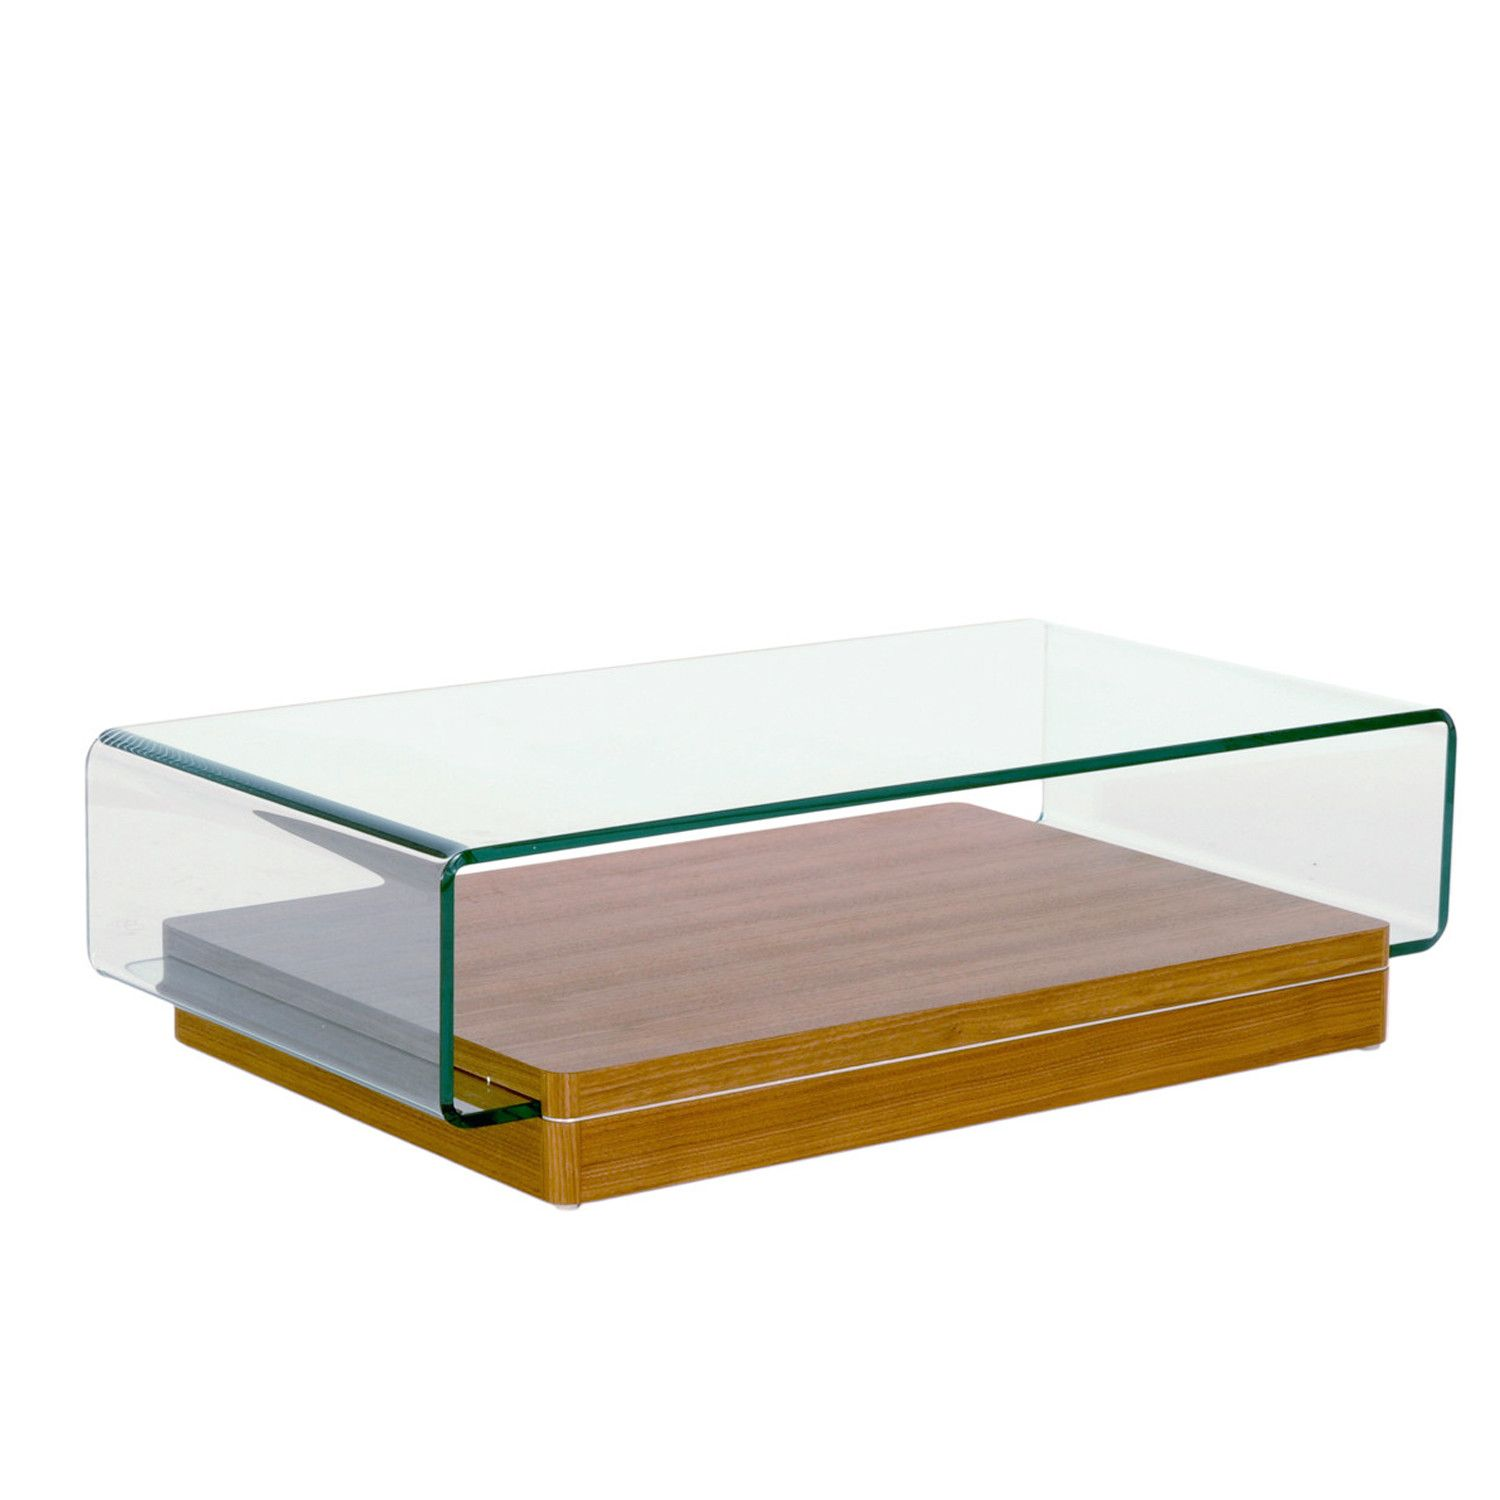 Display Coffee Table Display Coffee Table Coffee Table Table [ 1500 x 1500 Pixel ]